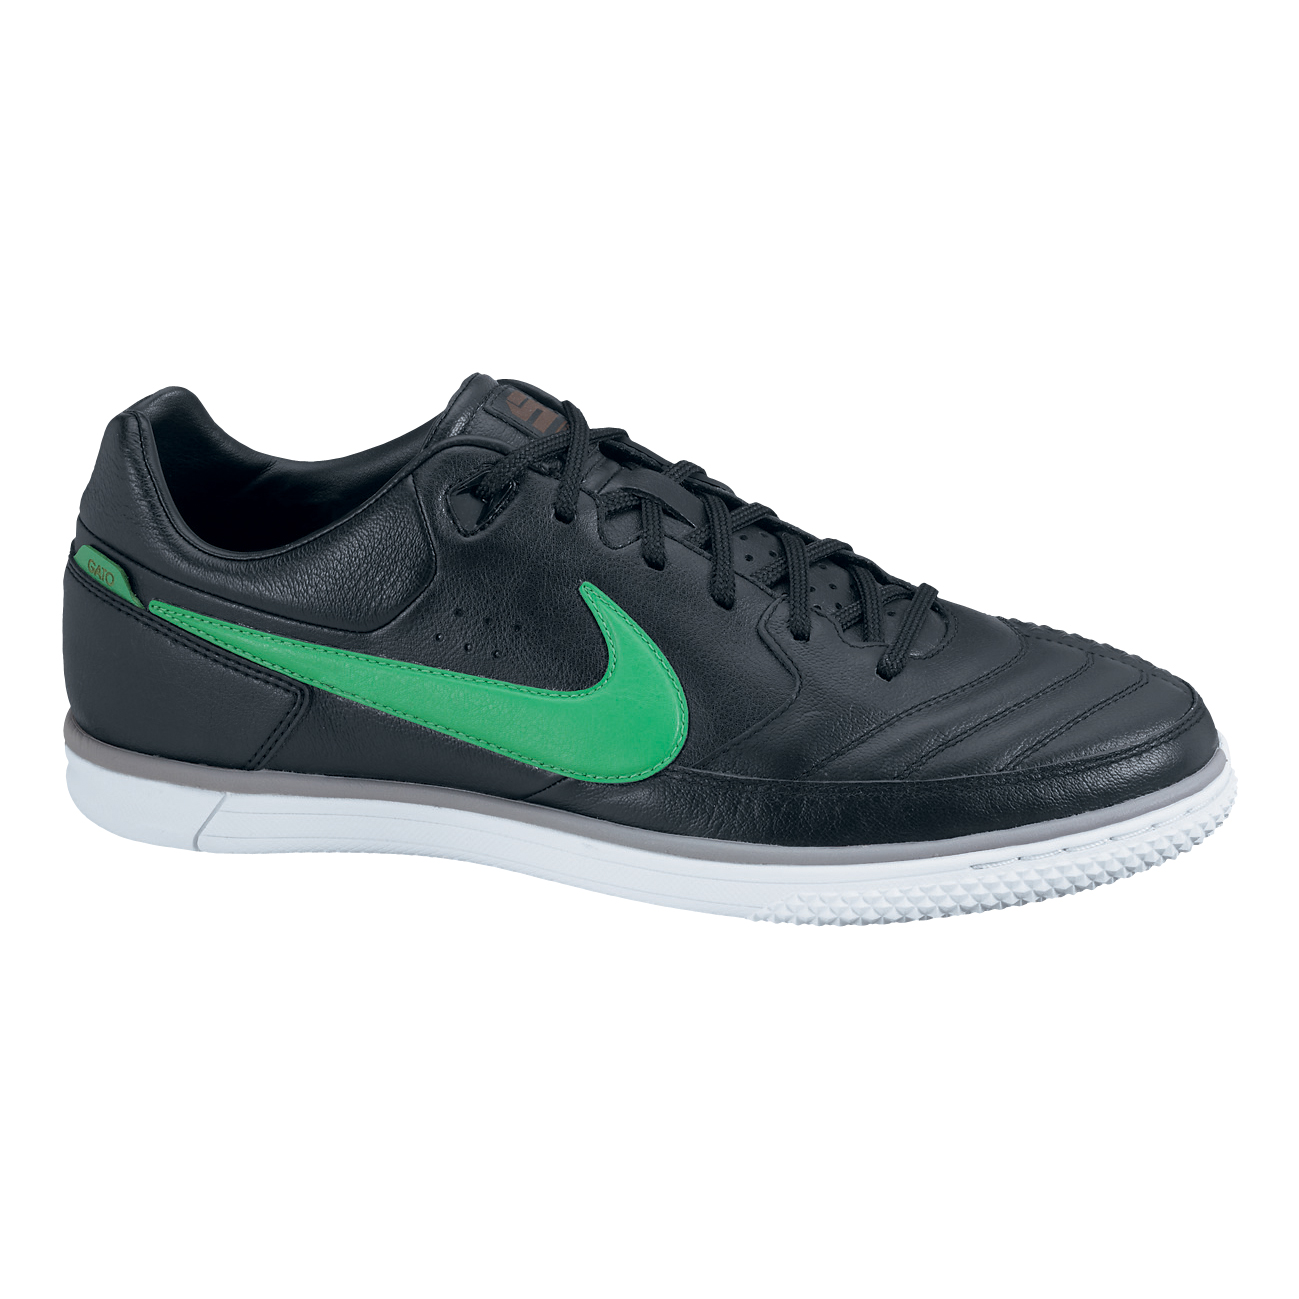 Nike 5 Streetgato Trainers - Black/Gym Green/Stealth